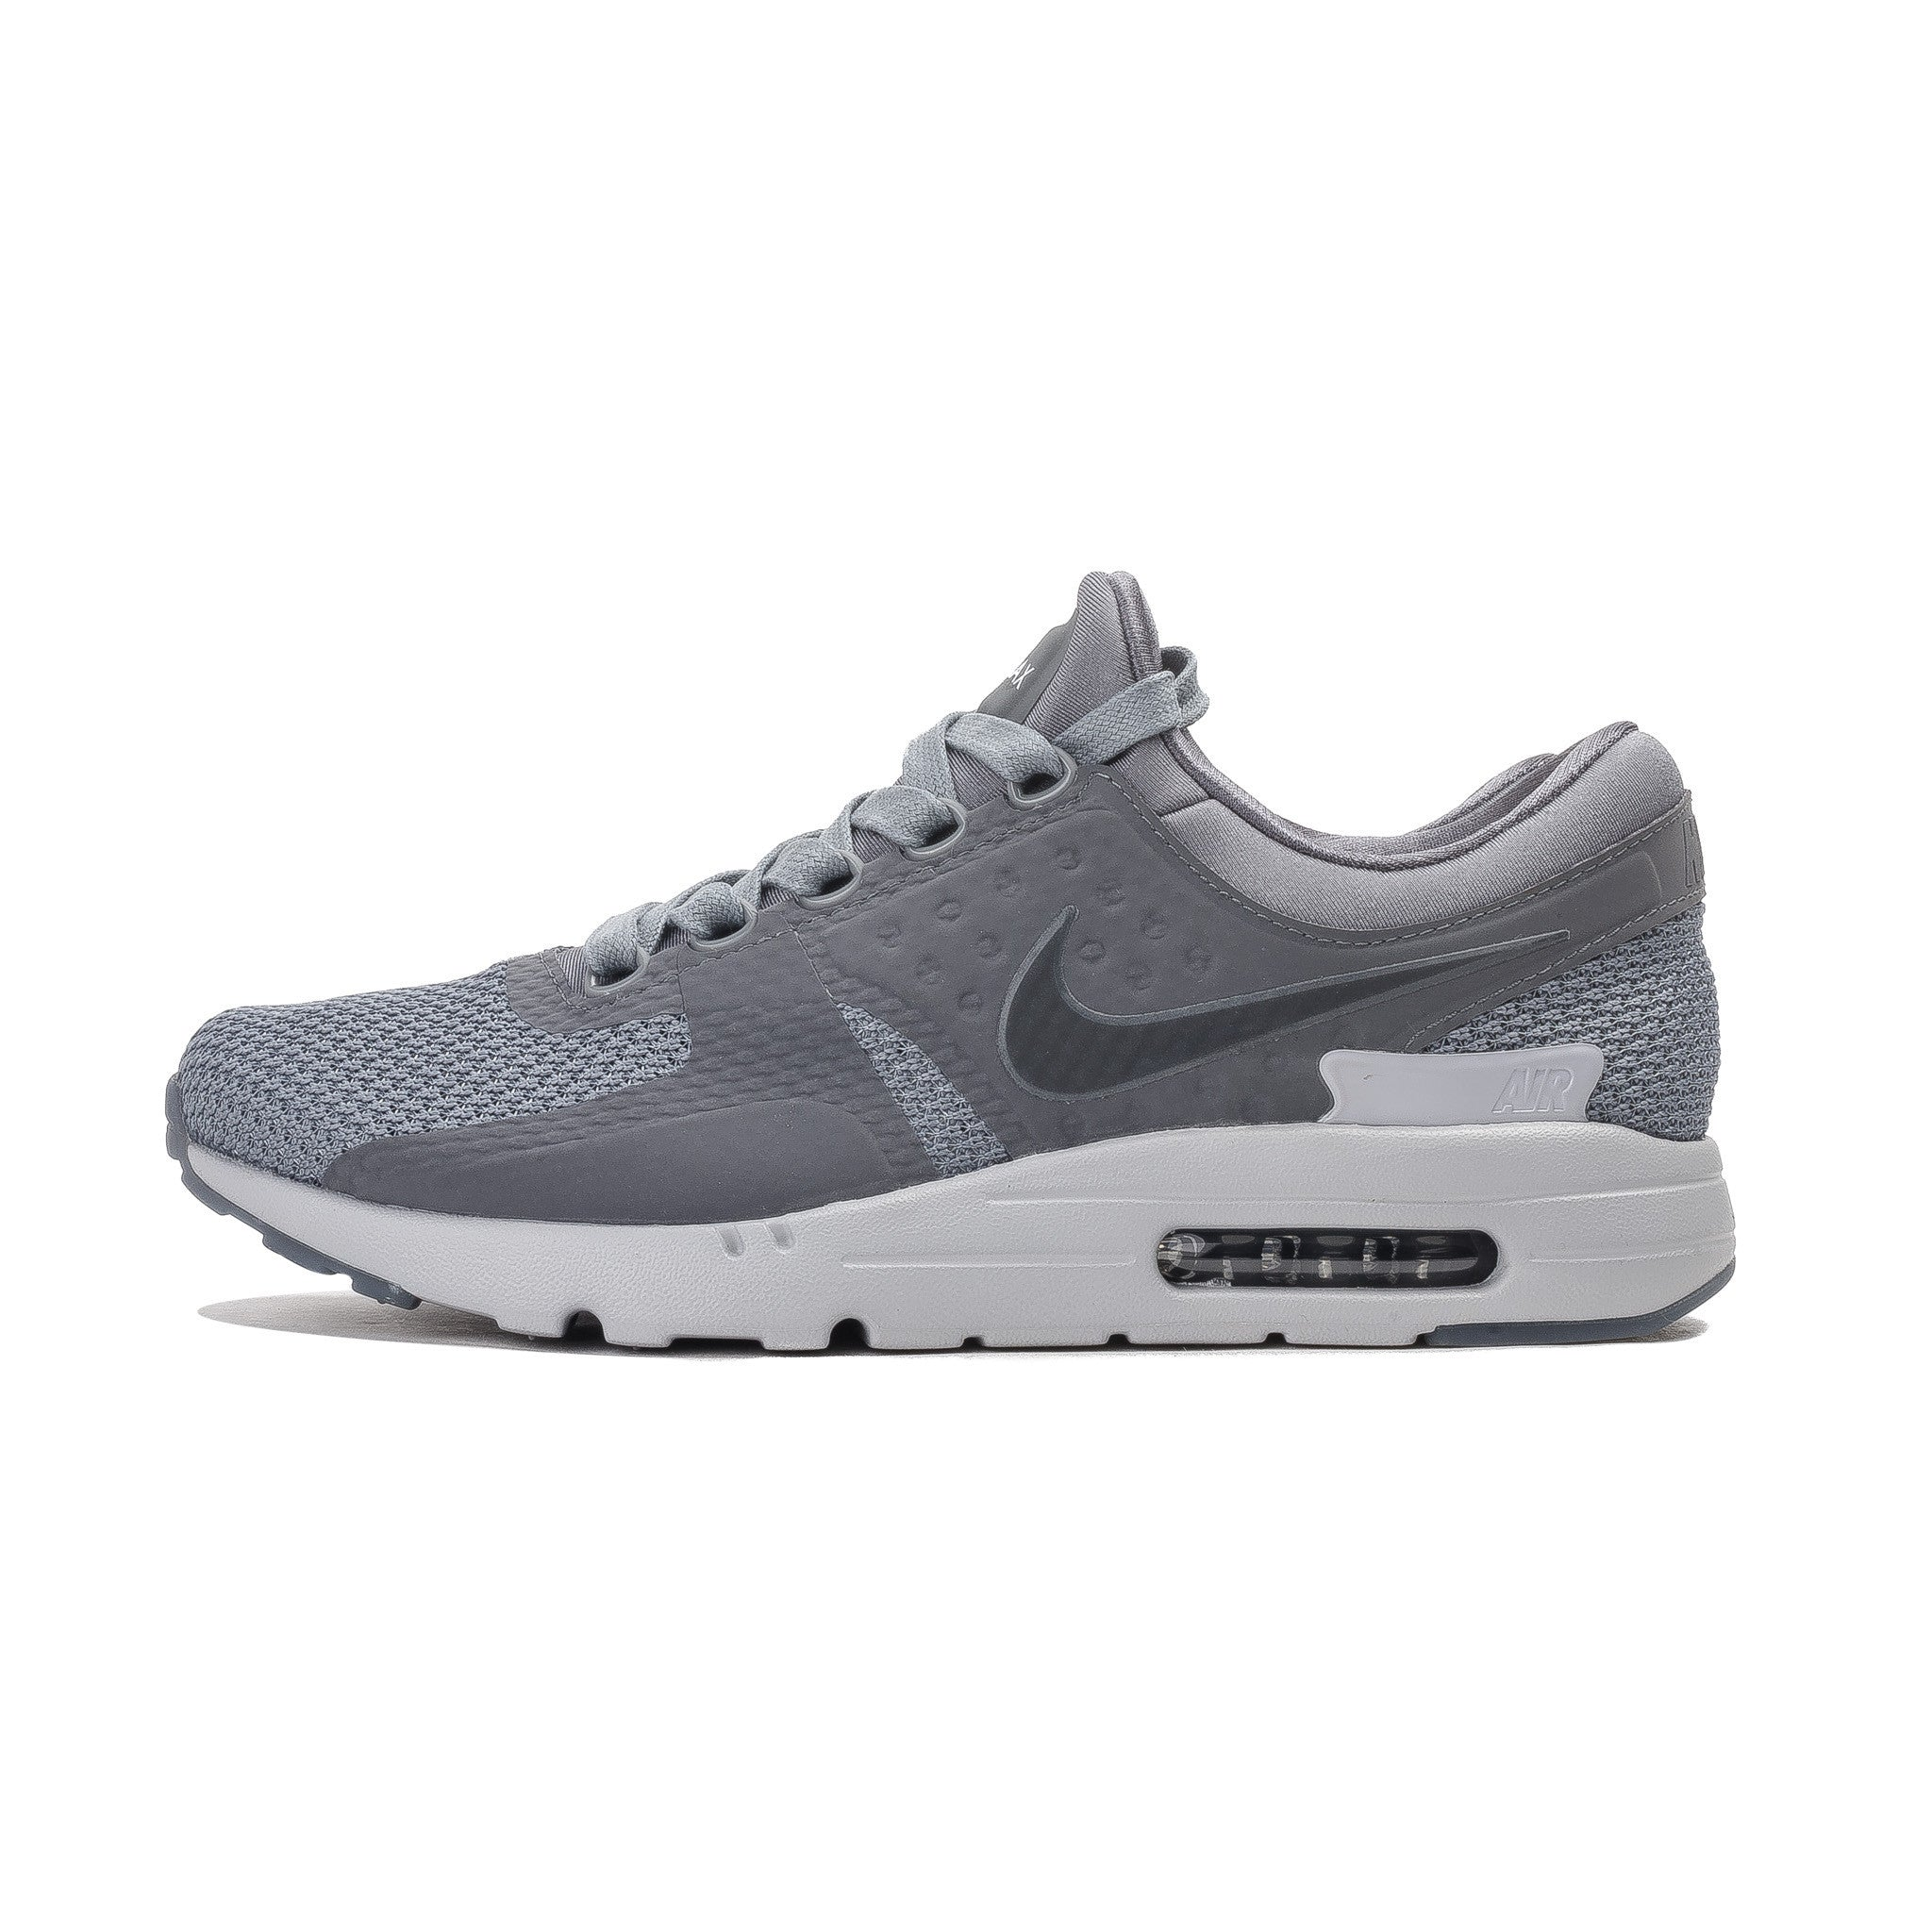 Air Max Zero QS 789695-003 Grey